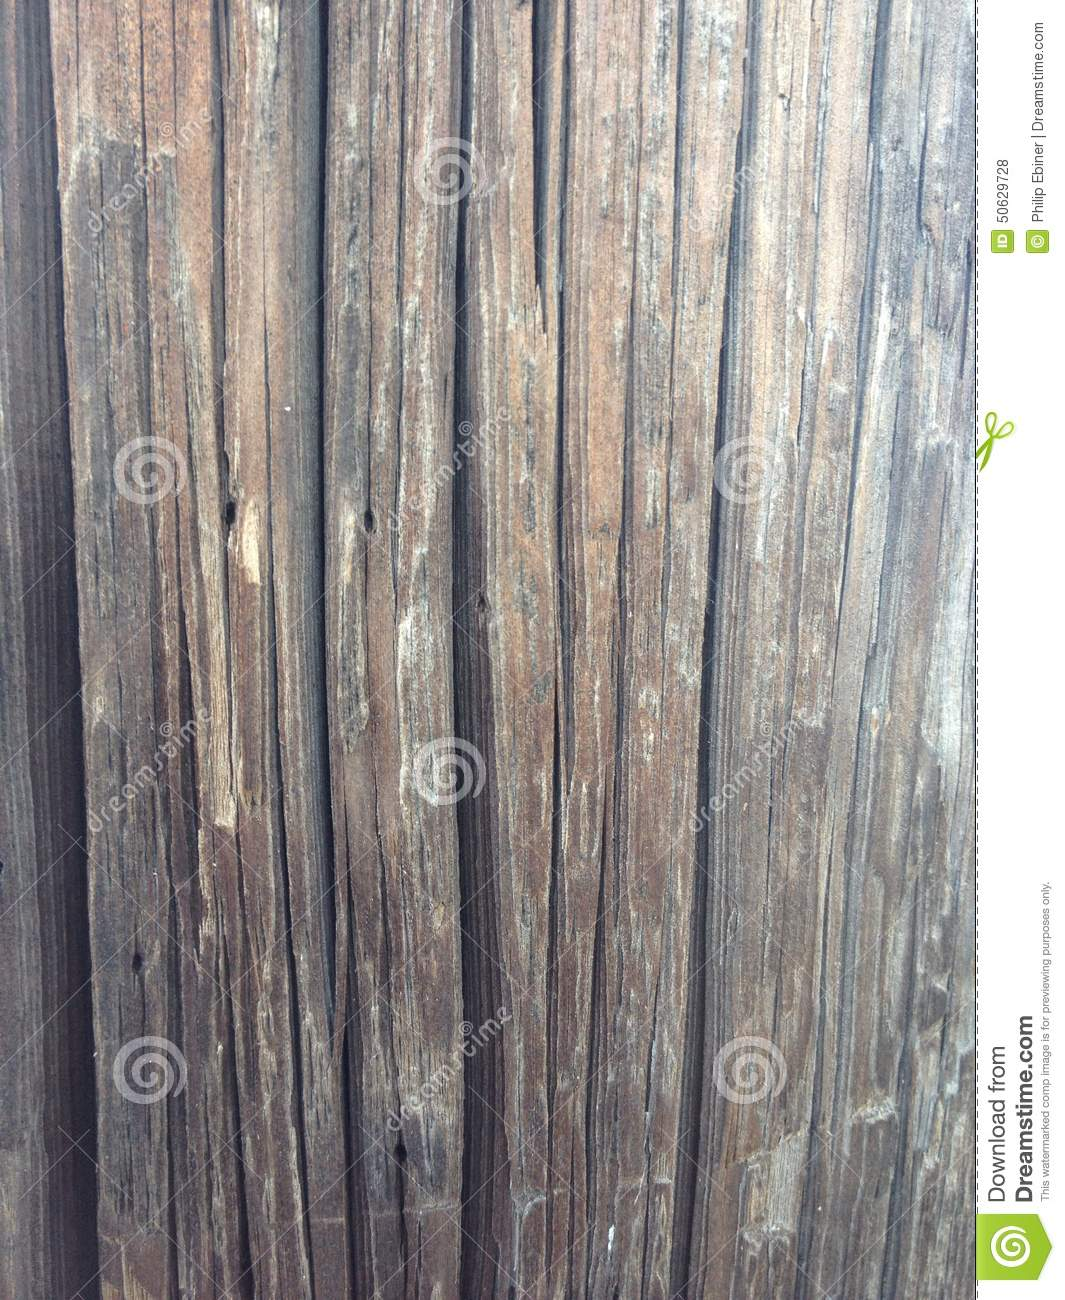 Wooden Post Texture wood street pole texture stock photo - image: 50629728